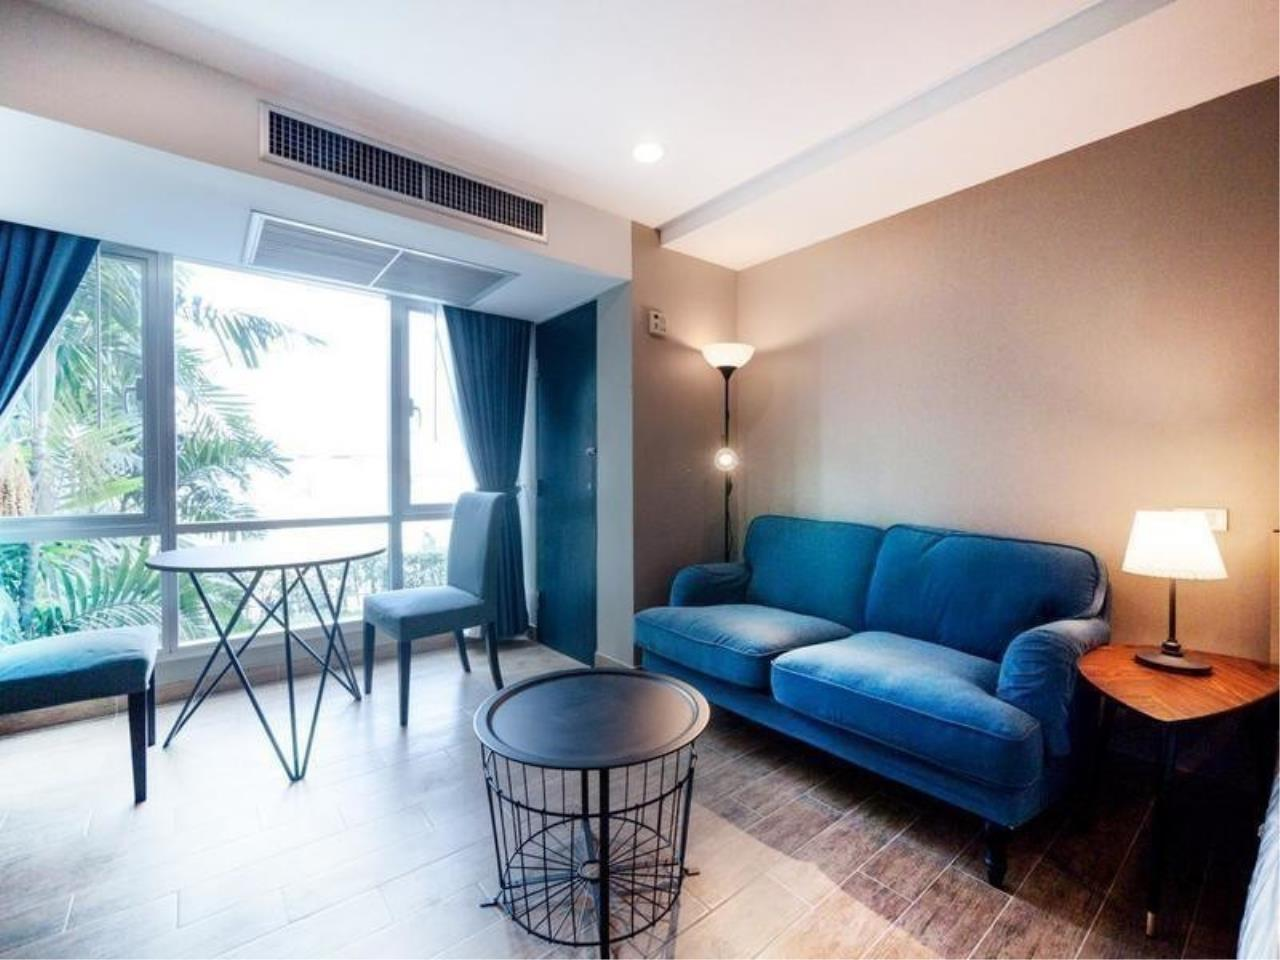 Quality Life Property Agency's For Rent Condo  1 Bedroom  At The Trendy Condominium , Many Units Available Here 2